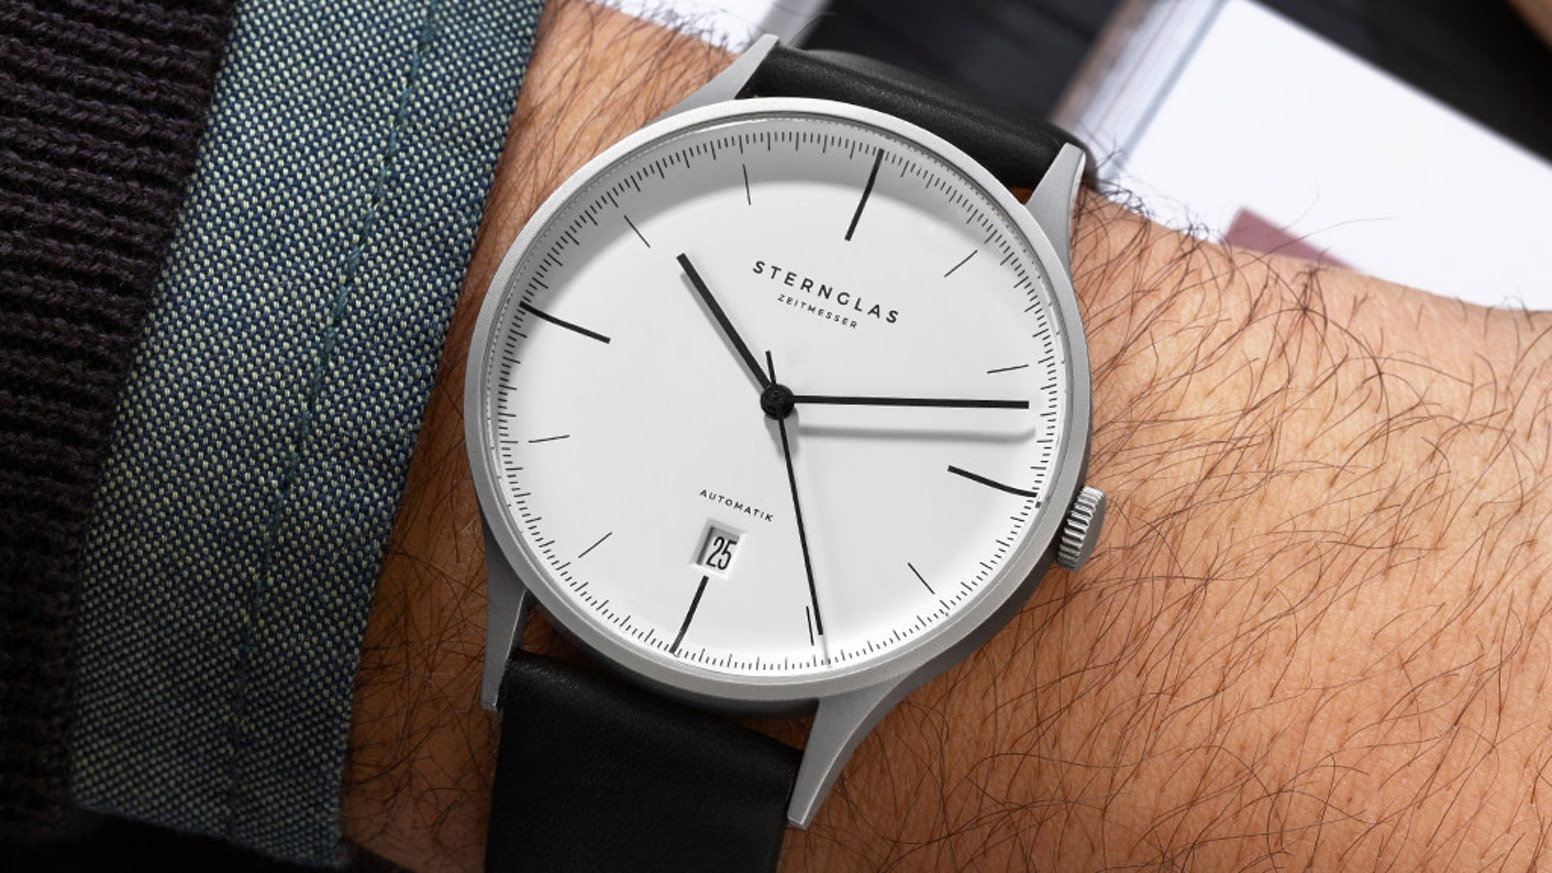 A classic Bauhaus-inspired mechanical watch for only 299€. Domed sapphire glass, ultra-slim design and a high-quality movement.